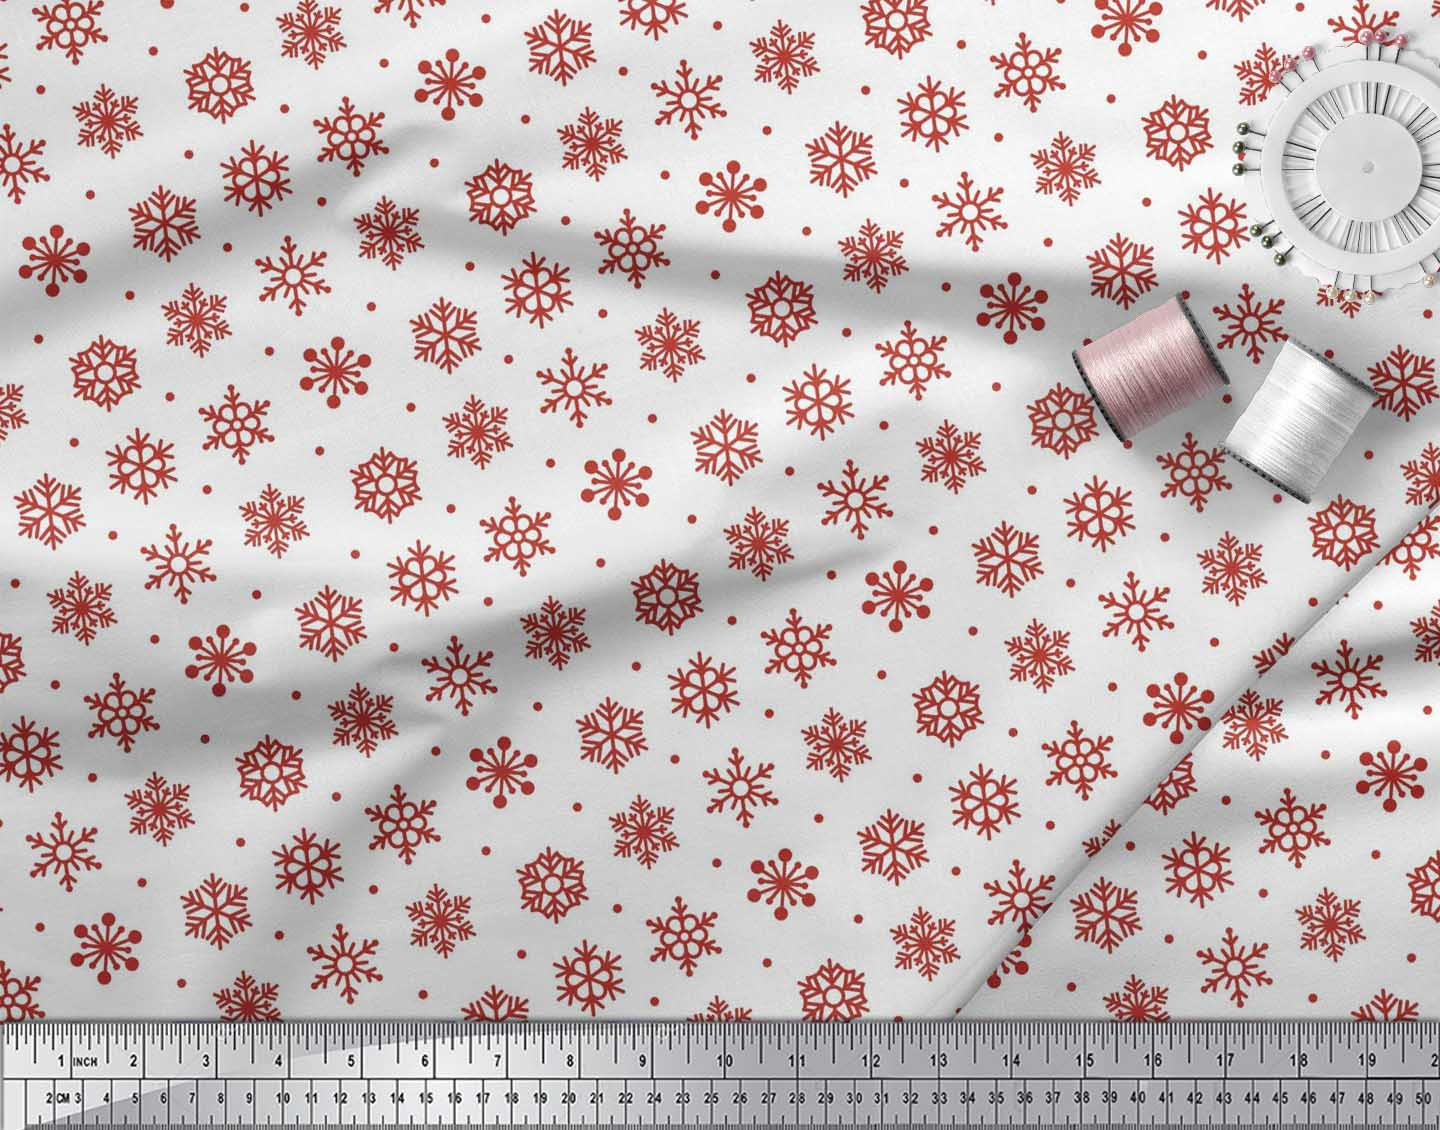 Soimoi-Cotton-Poplin-Fabric-Dot-amp-Snow-Flakes-Floral-Print-Sewing-8mA thumbnail 3